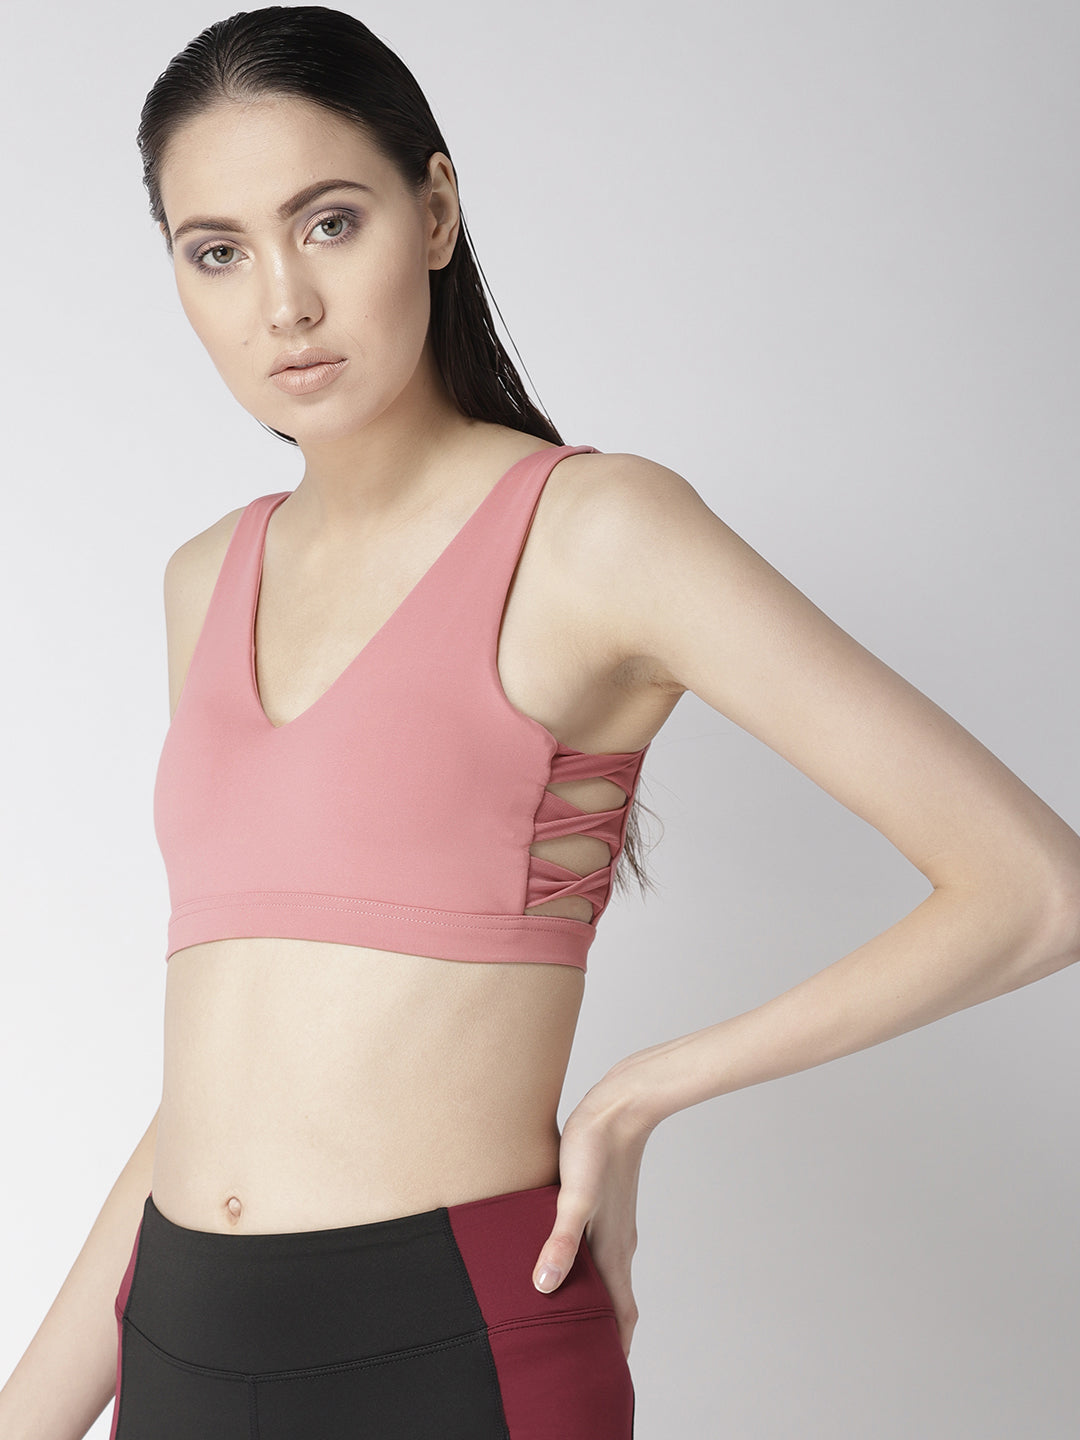 V-neck sports bra with side twist detailing